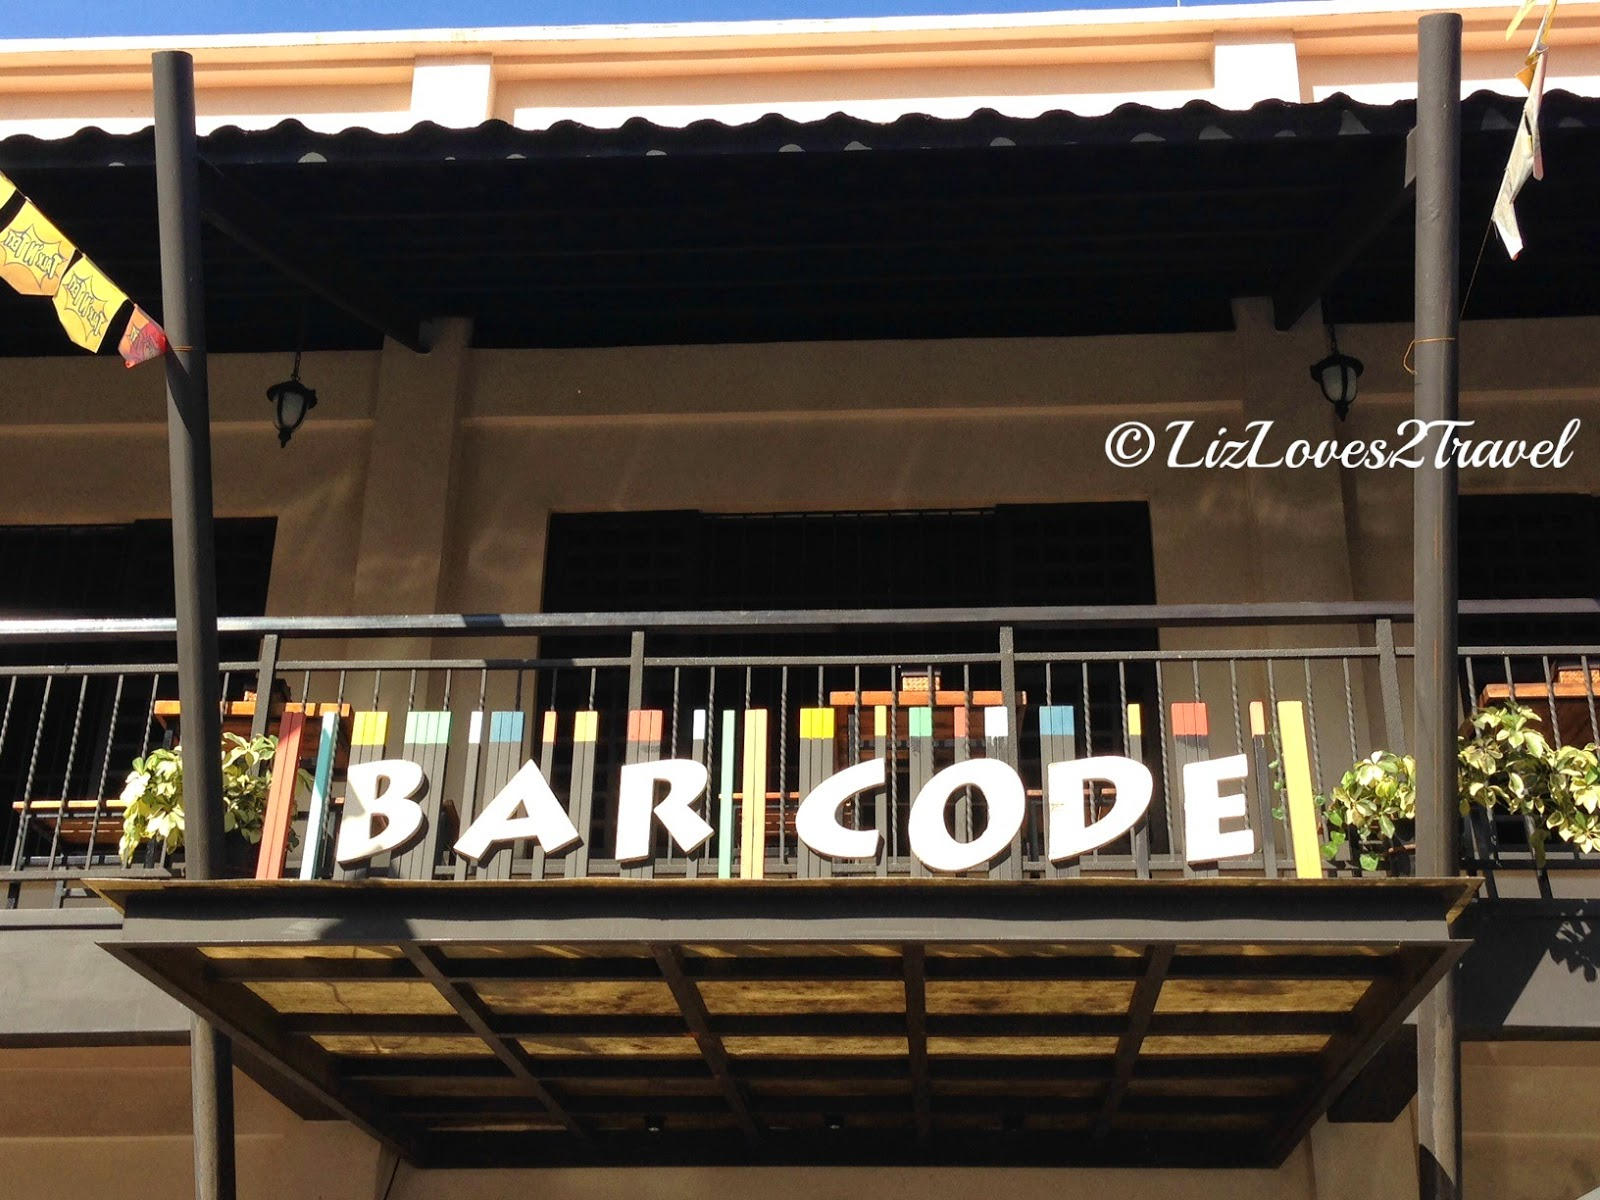 Where to eat in zamboanga city barcode the bookworm for Barcode food